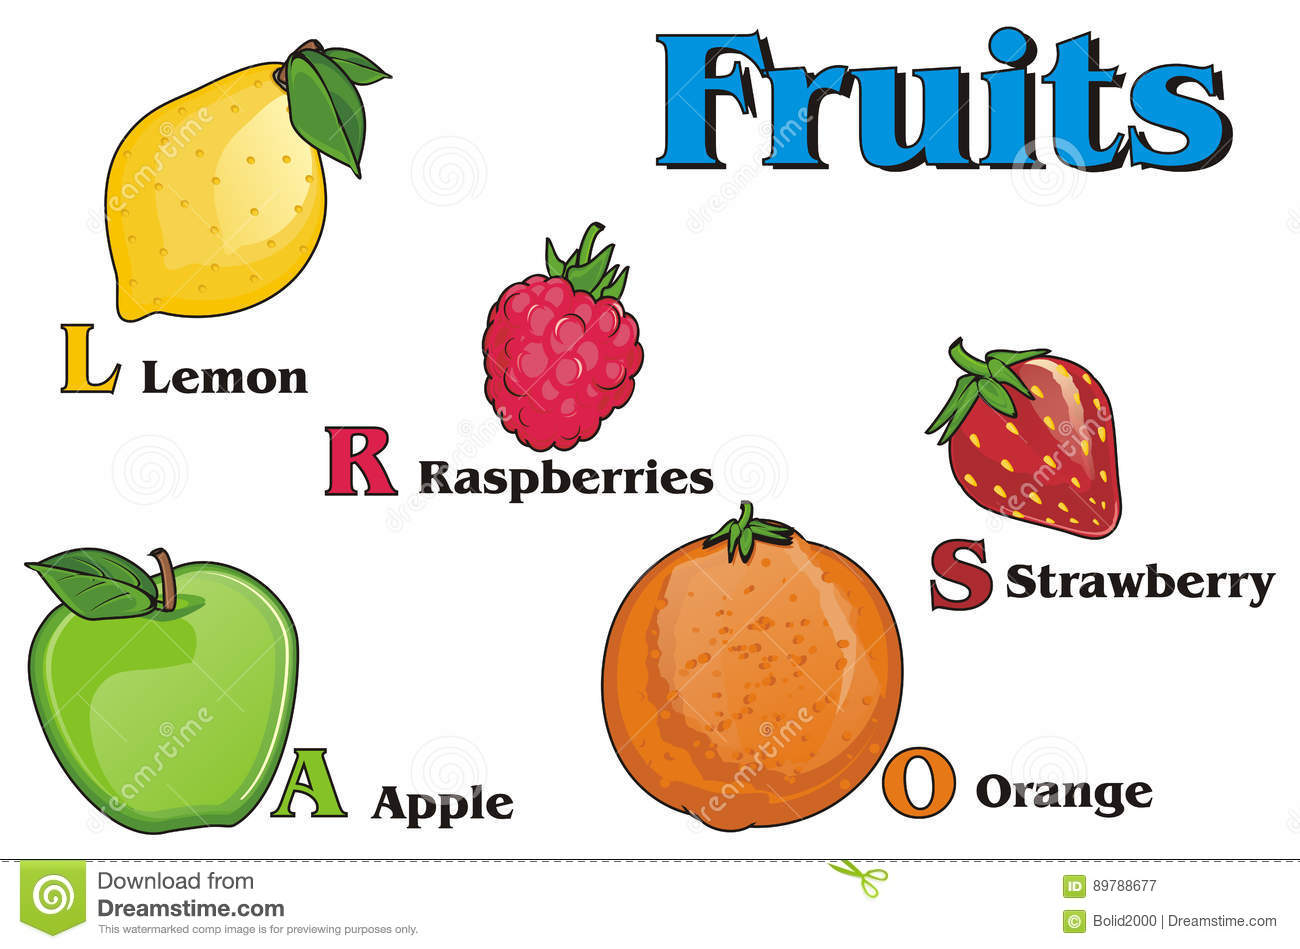 All Types Of Fruits With Pictures And Names